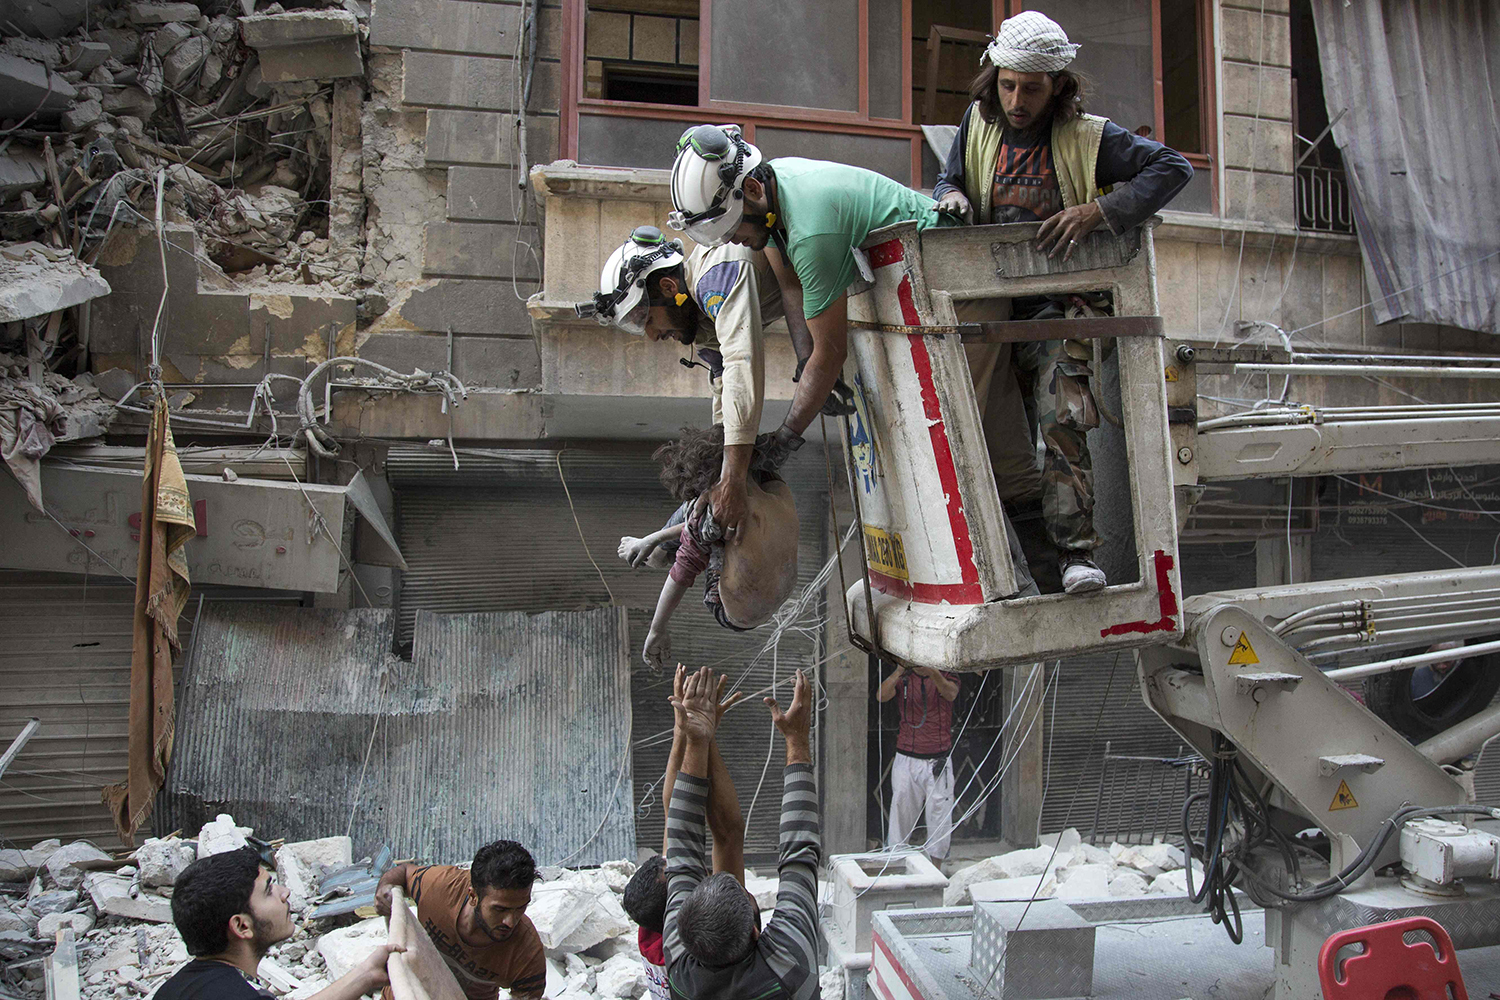 TOPSHOT - Syrian rescuers hand the body of a girl down to civilians on the ground after she was pulled from rubble of a budling following government forces air strikes in the rebel held neighbourhood of Al-Shaar in Aleppo on September 27, 2016. Syria's army took control of a rebel-held district in central Aleppo, after days of heavy air strikes that have killed dozens and sparked allegations of war crimes. / AFP PHOTO / KARAM AL-MASRI / TT / kod 444